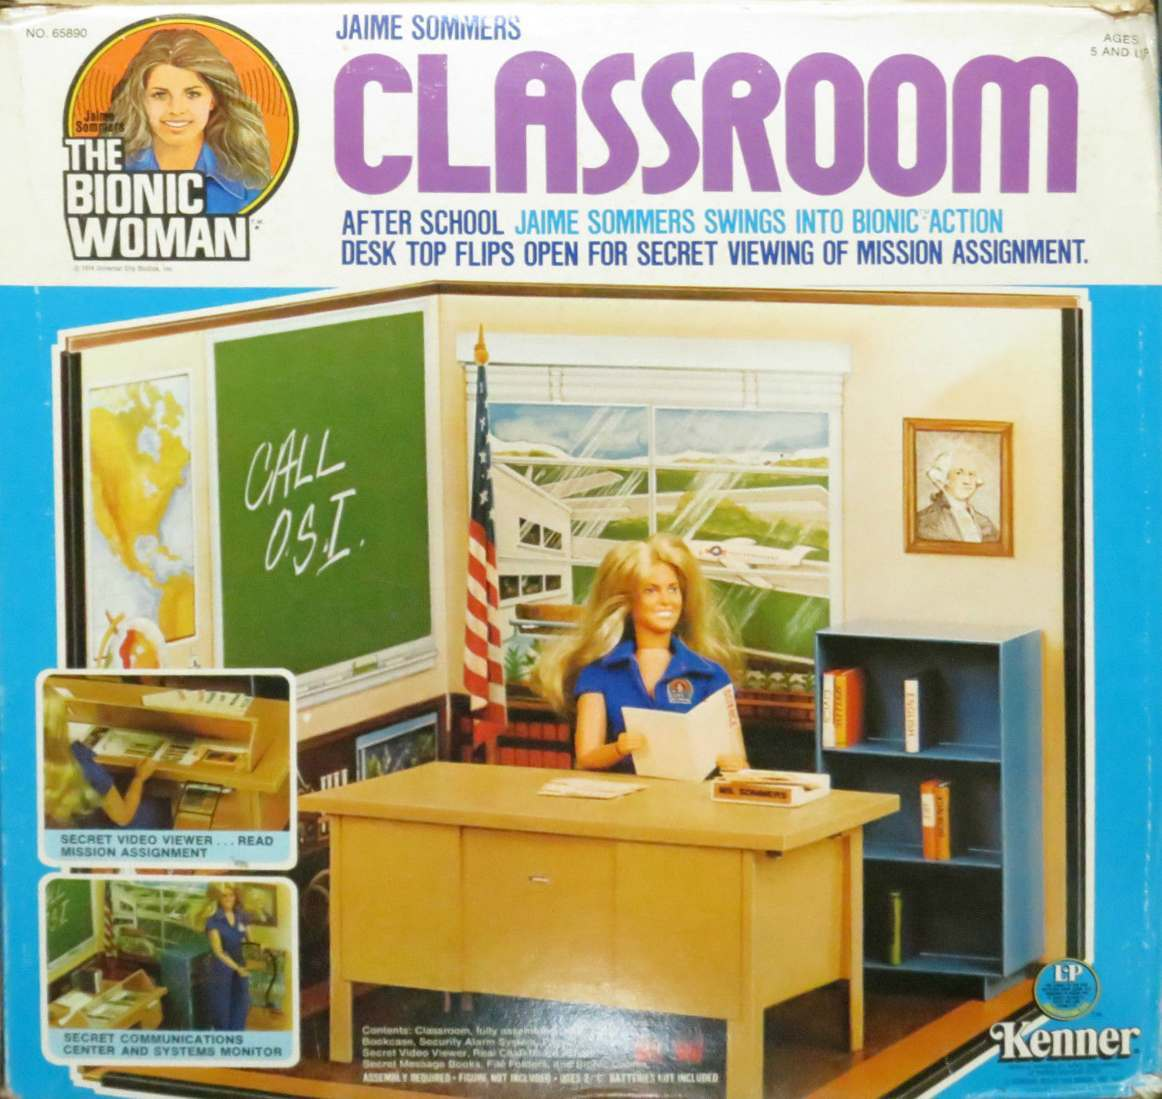 Jaime Sommer's Classroom copy